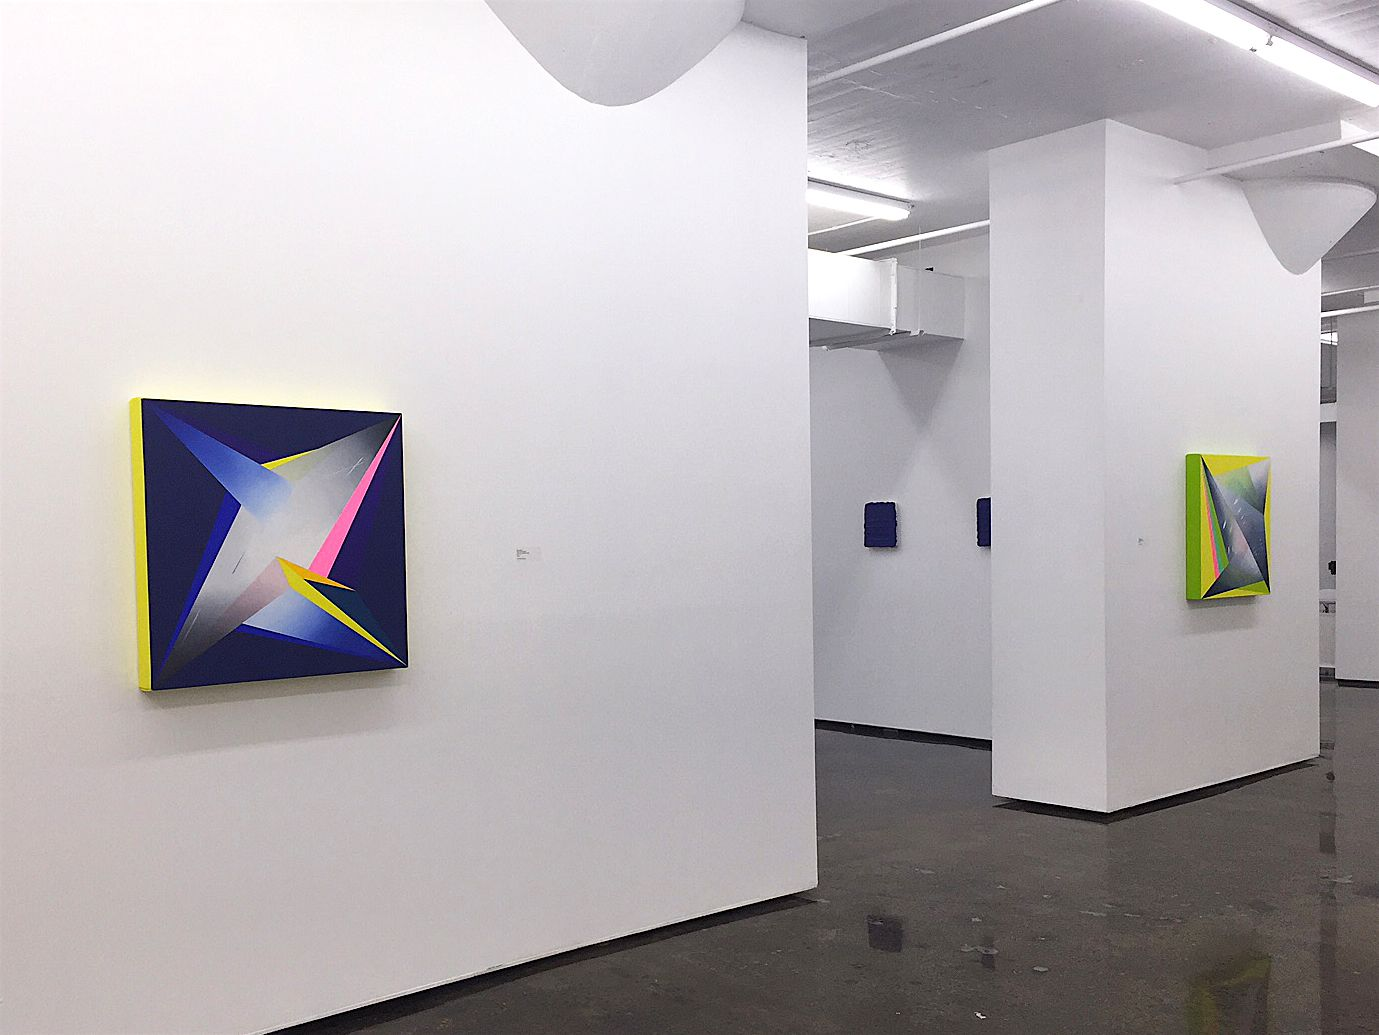 JANET JONES   STARRY, STARRY NITE #1 & #4   INSTALLATION VIEW  OIL AND ACRYLIC ON CANVAS   30 X 30INCHES EACH   2016